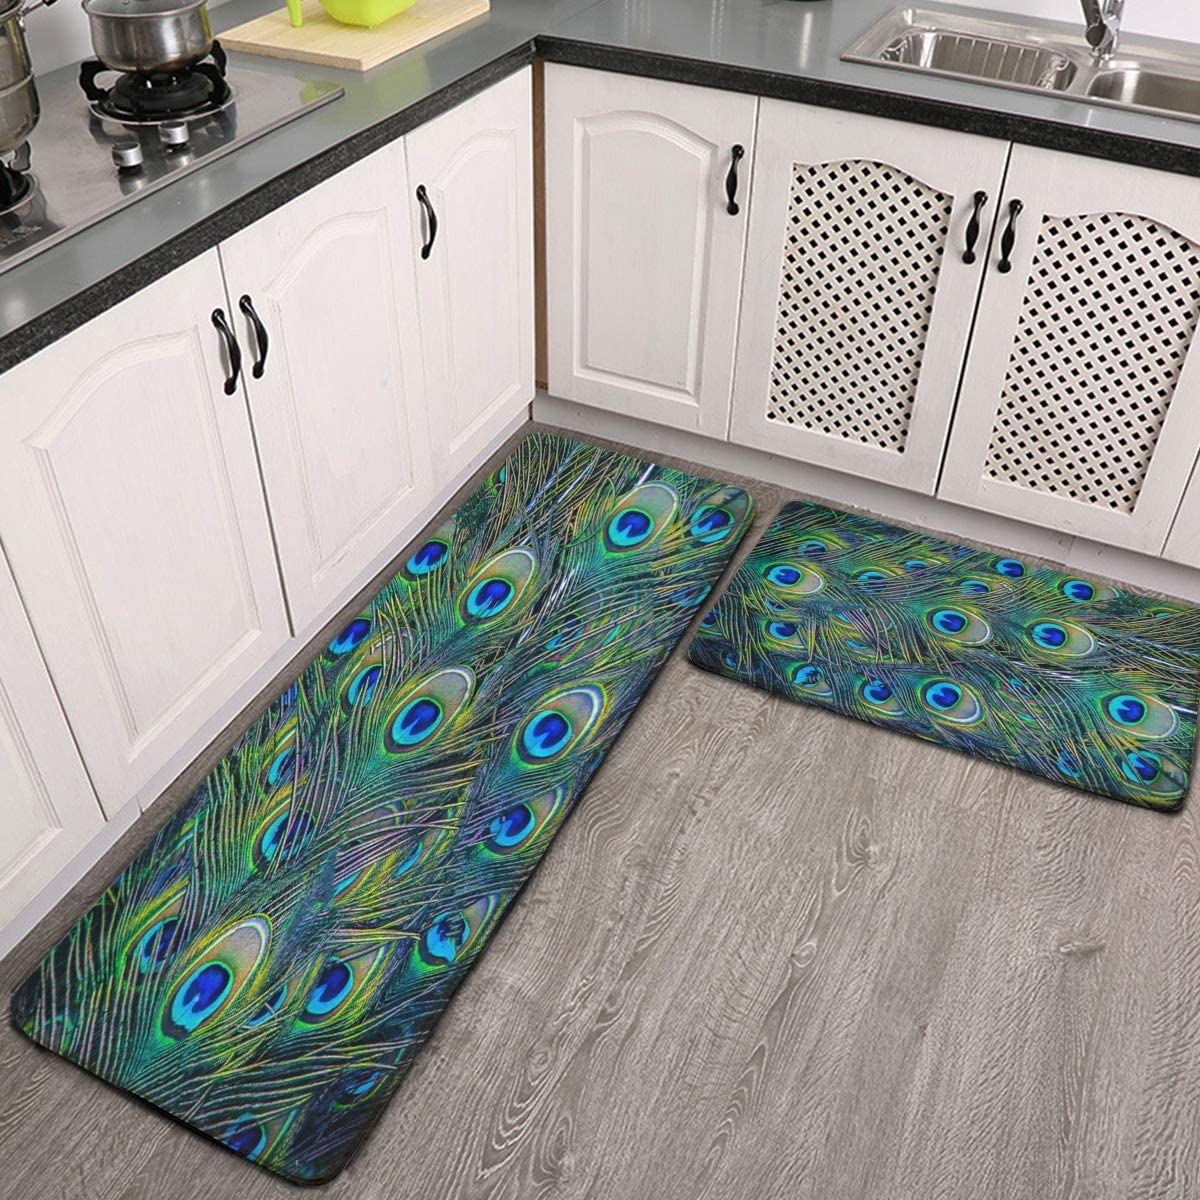 Kitchen Rugs Set Of 2 Beautiful Green S Colorful Sale SALE% OFF Feather Max 44% OFF Peacock